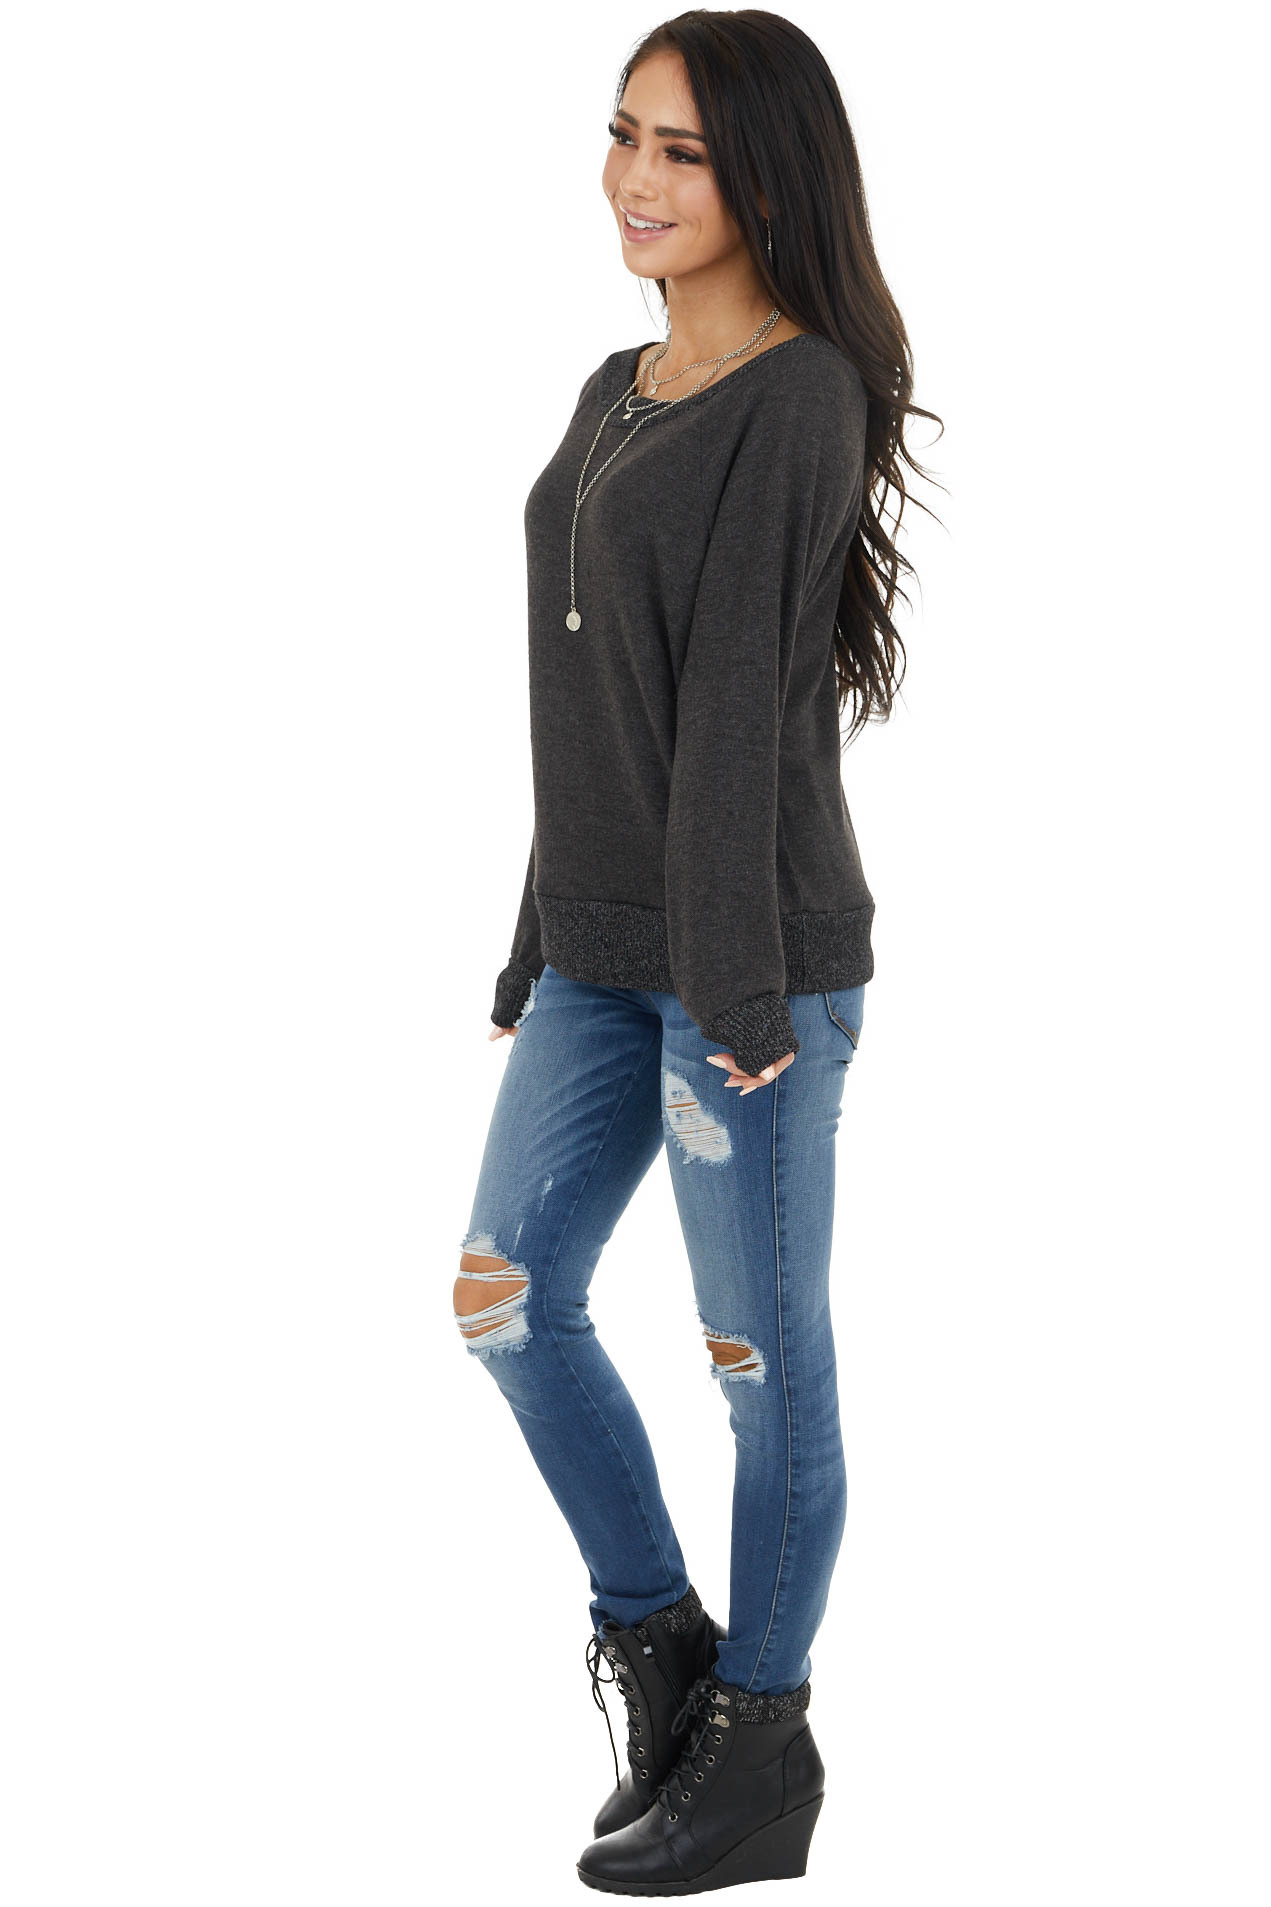 Faded Black Stretchy Boat Neckline Top with Contrast Trim